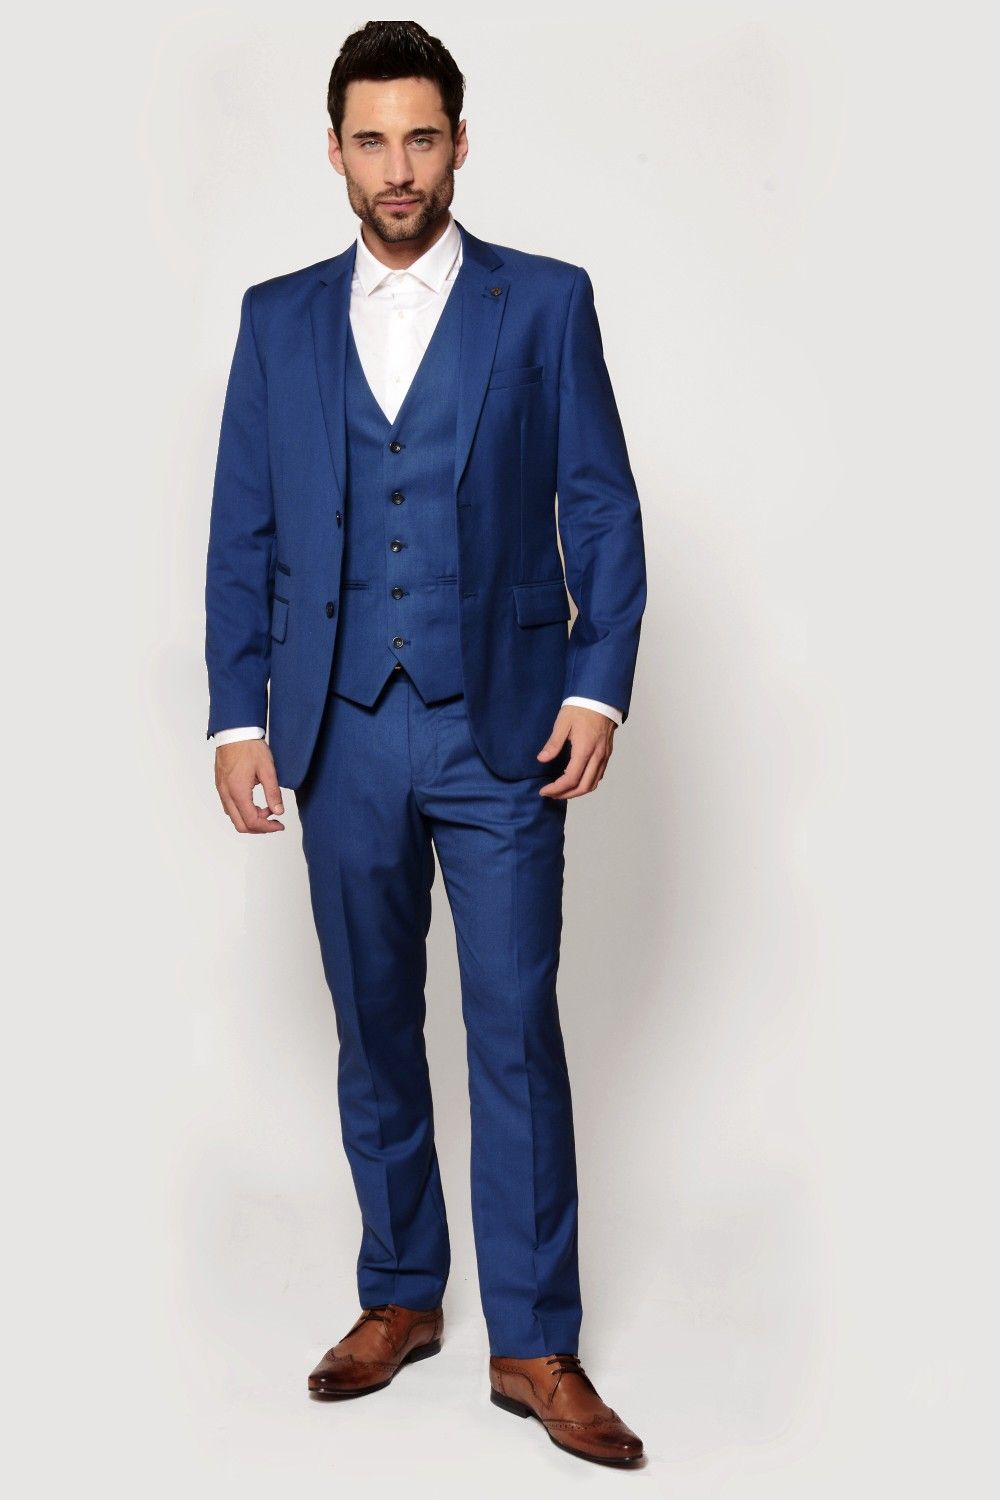 1000  images about Blue suits on Pinterest | Cobalt blue, Suits